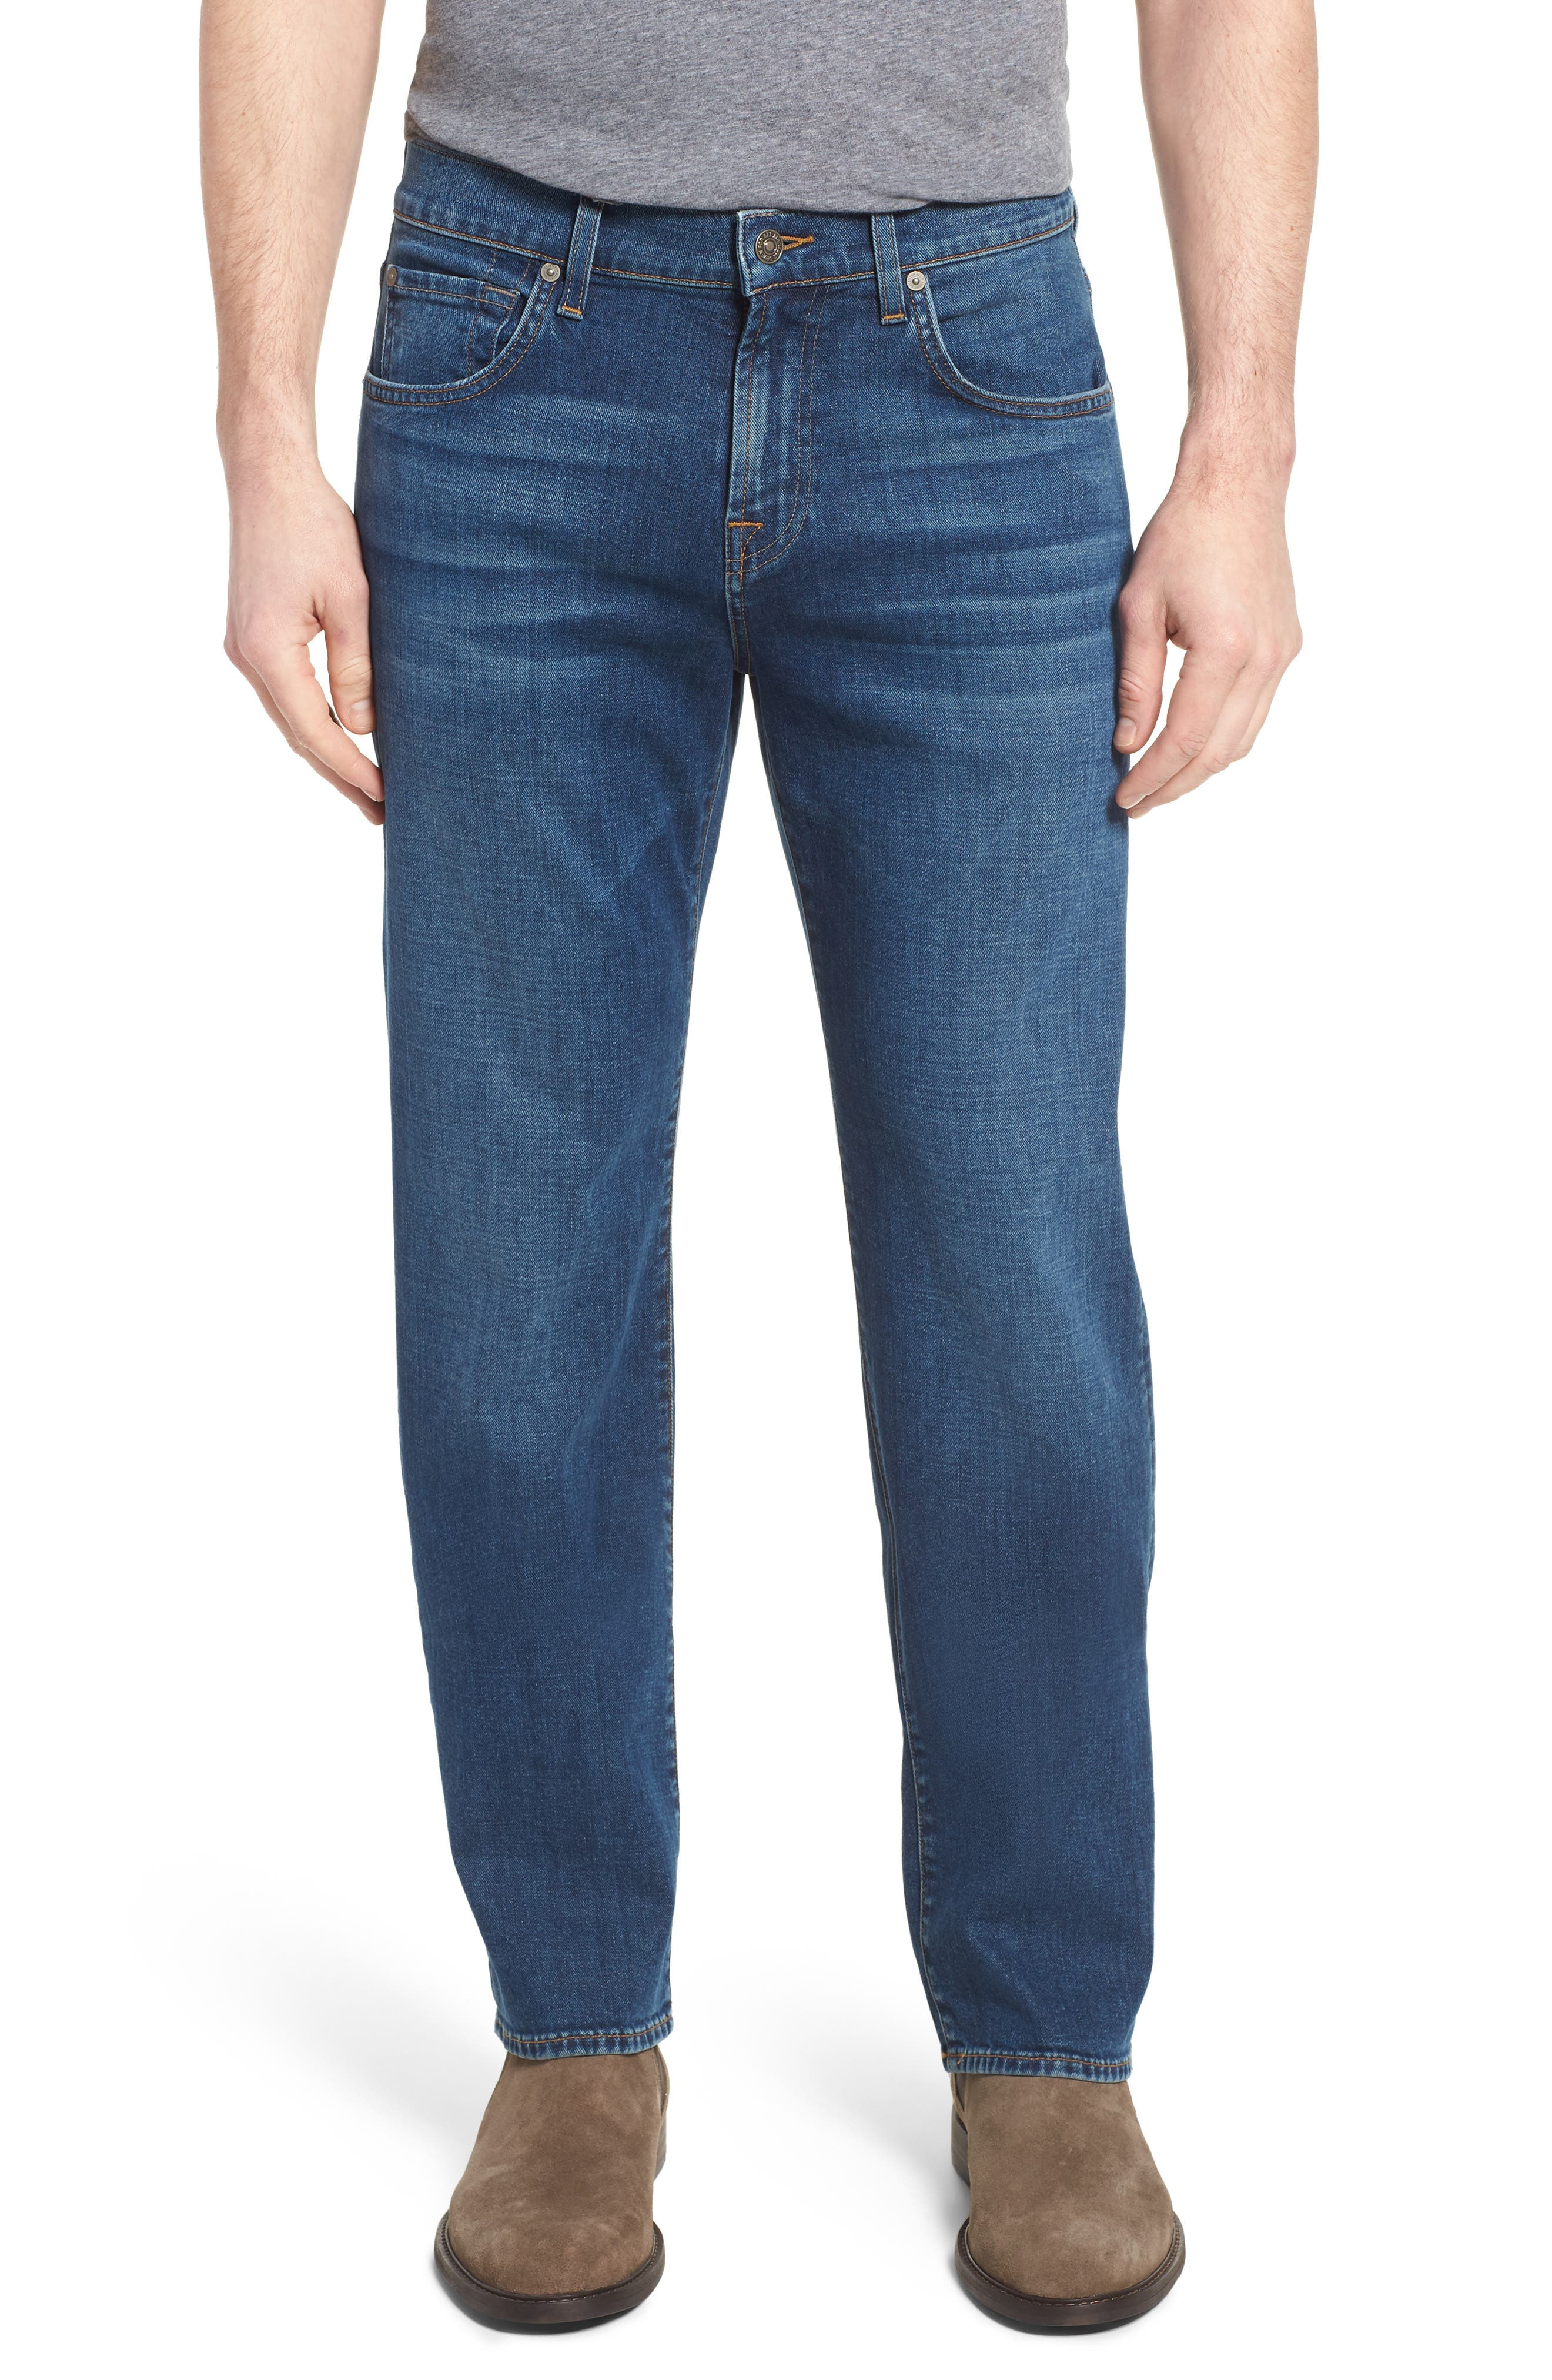 Austyn Relaxed Fit Jeans,                         Main,                         color, Oasis